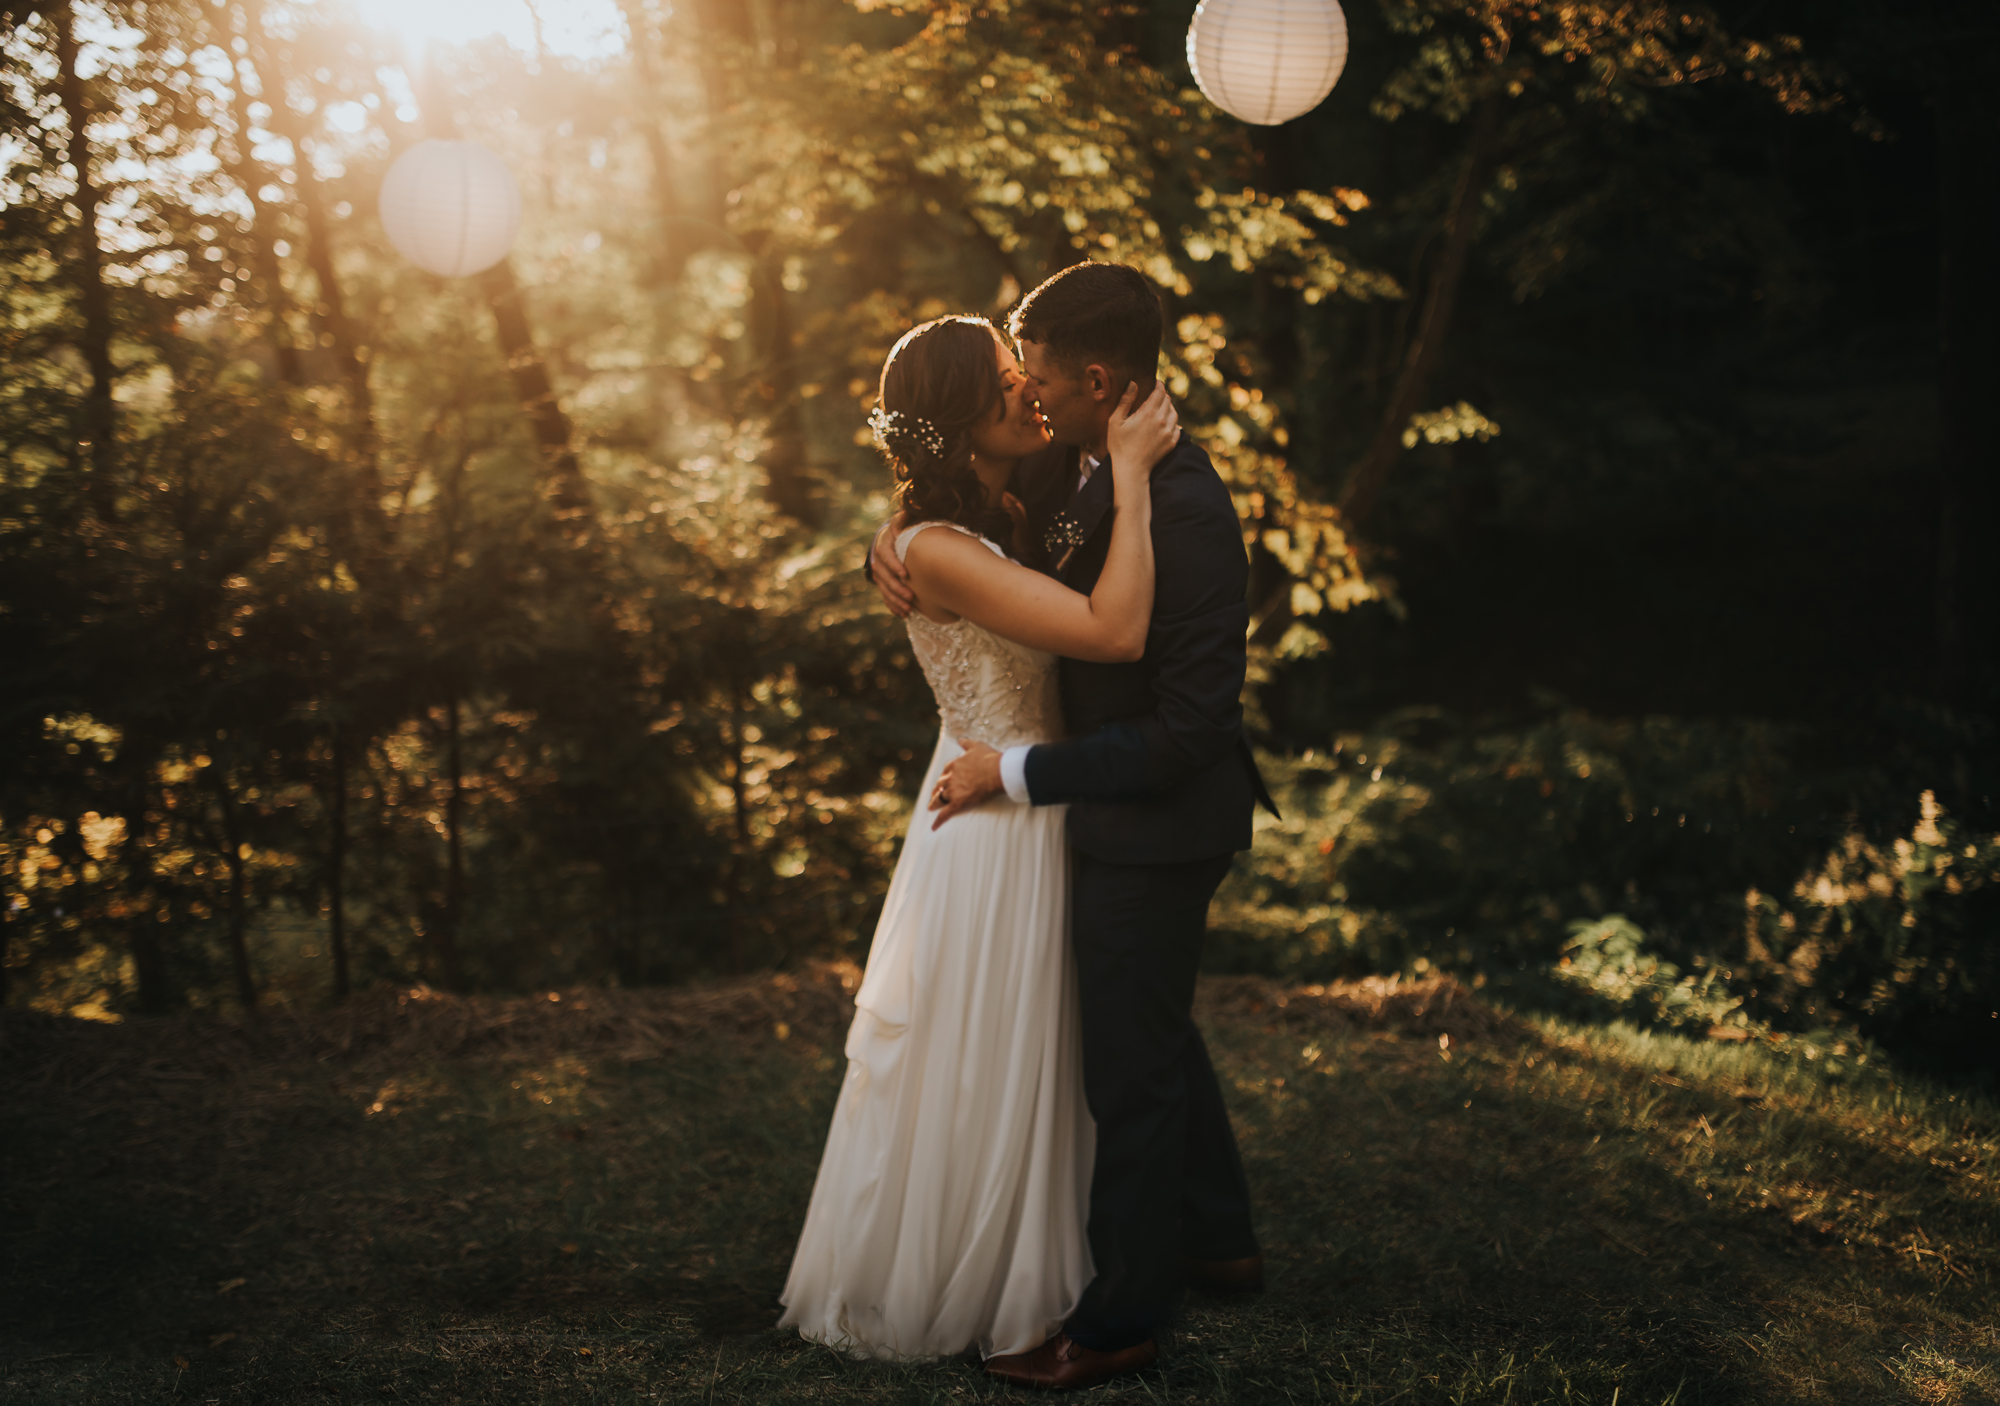 New England Based Award-Winning Wedding and Elopements Photographer | Golden Aura Photography